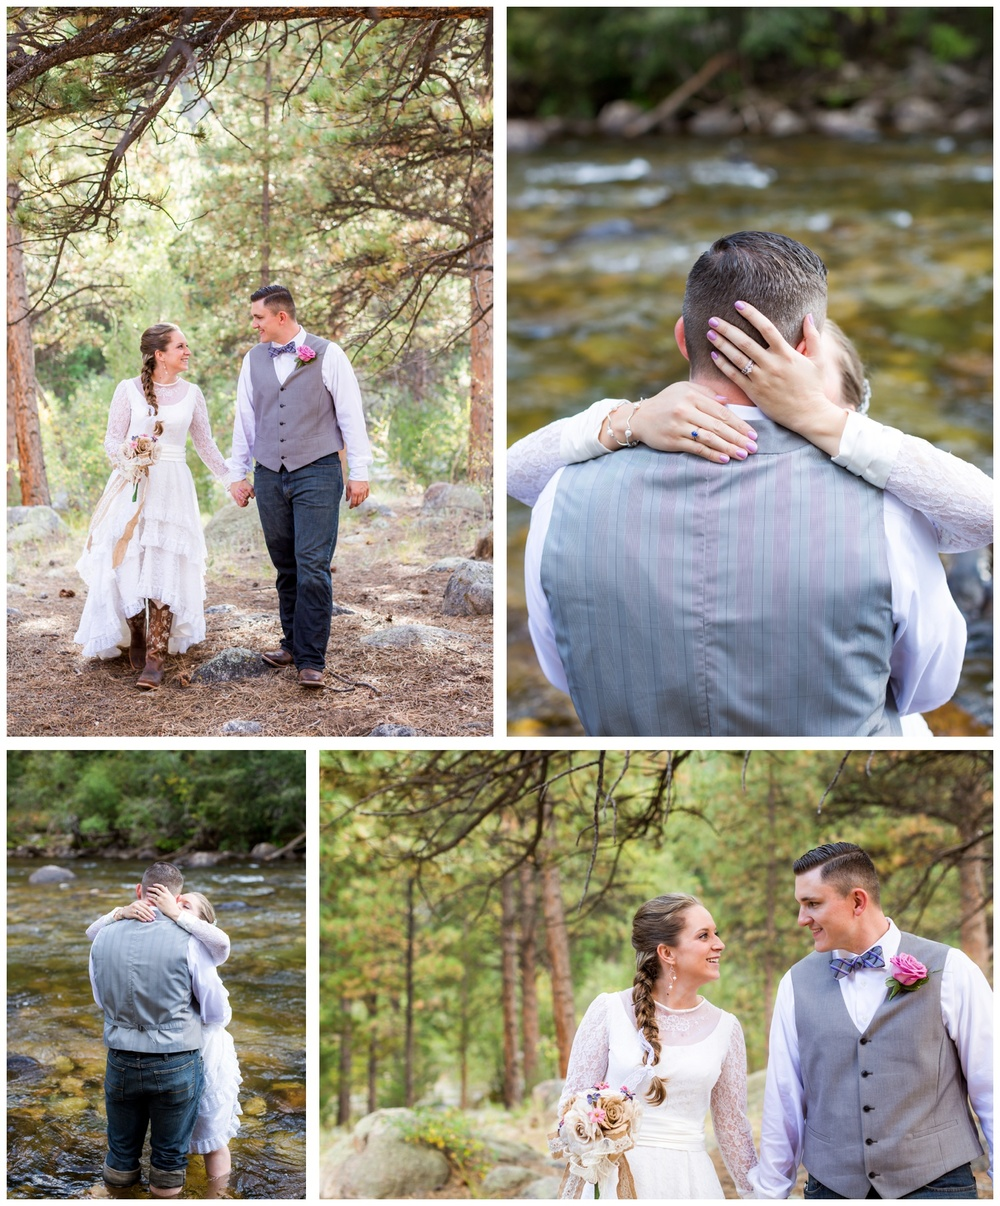 Poudre Canyon Wedding Photography13.jpg